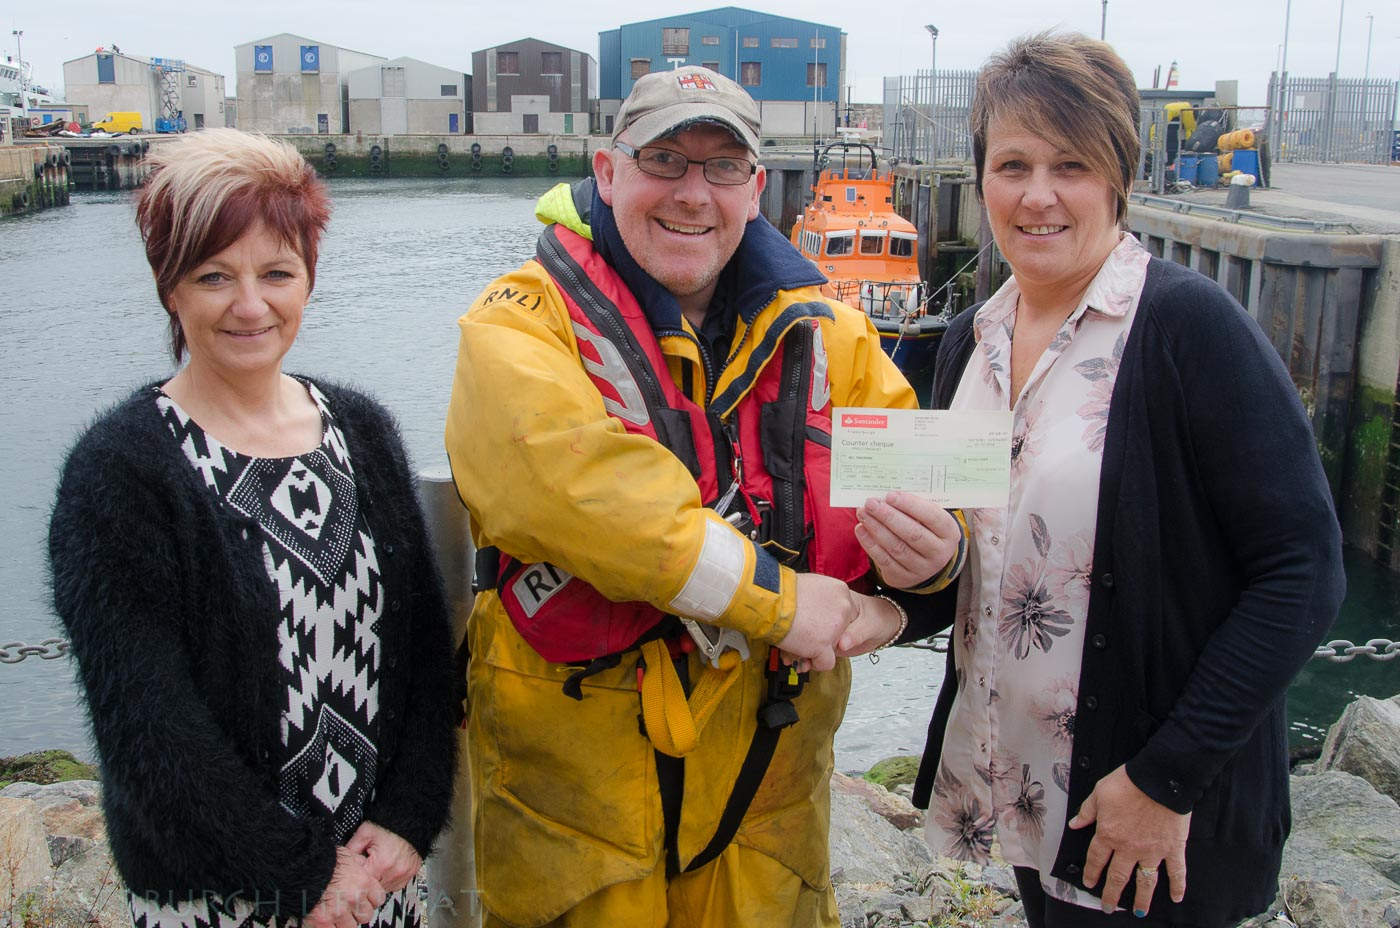 Moira and Denise present Coxswain Vic with Cheque from Wedding Exhibition with Fraserburgh Lifeboat in the background.